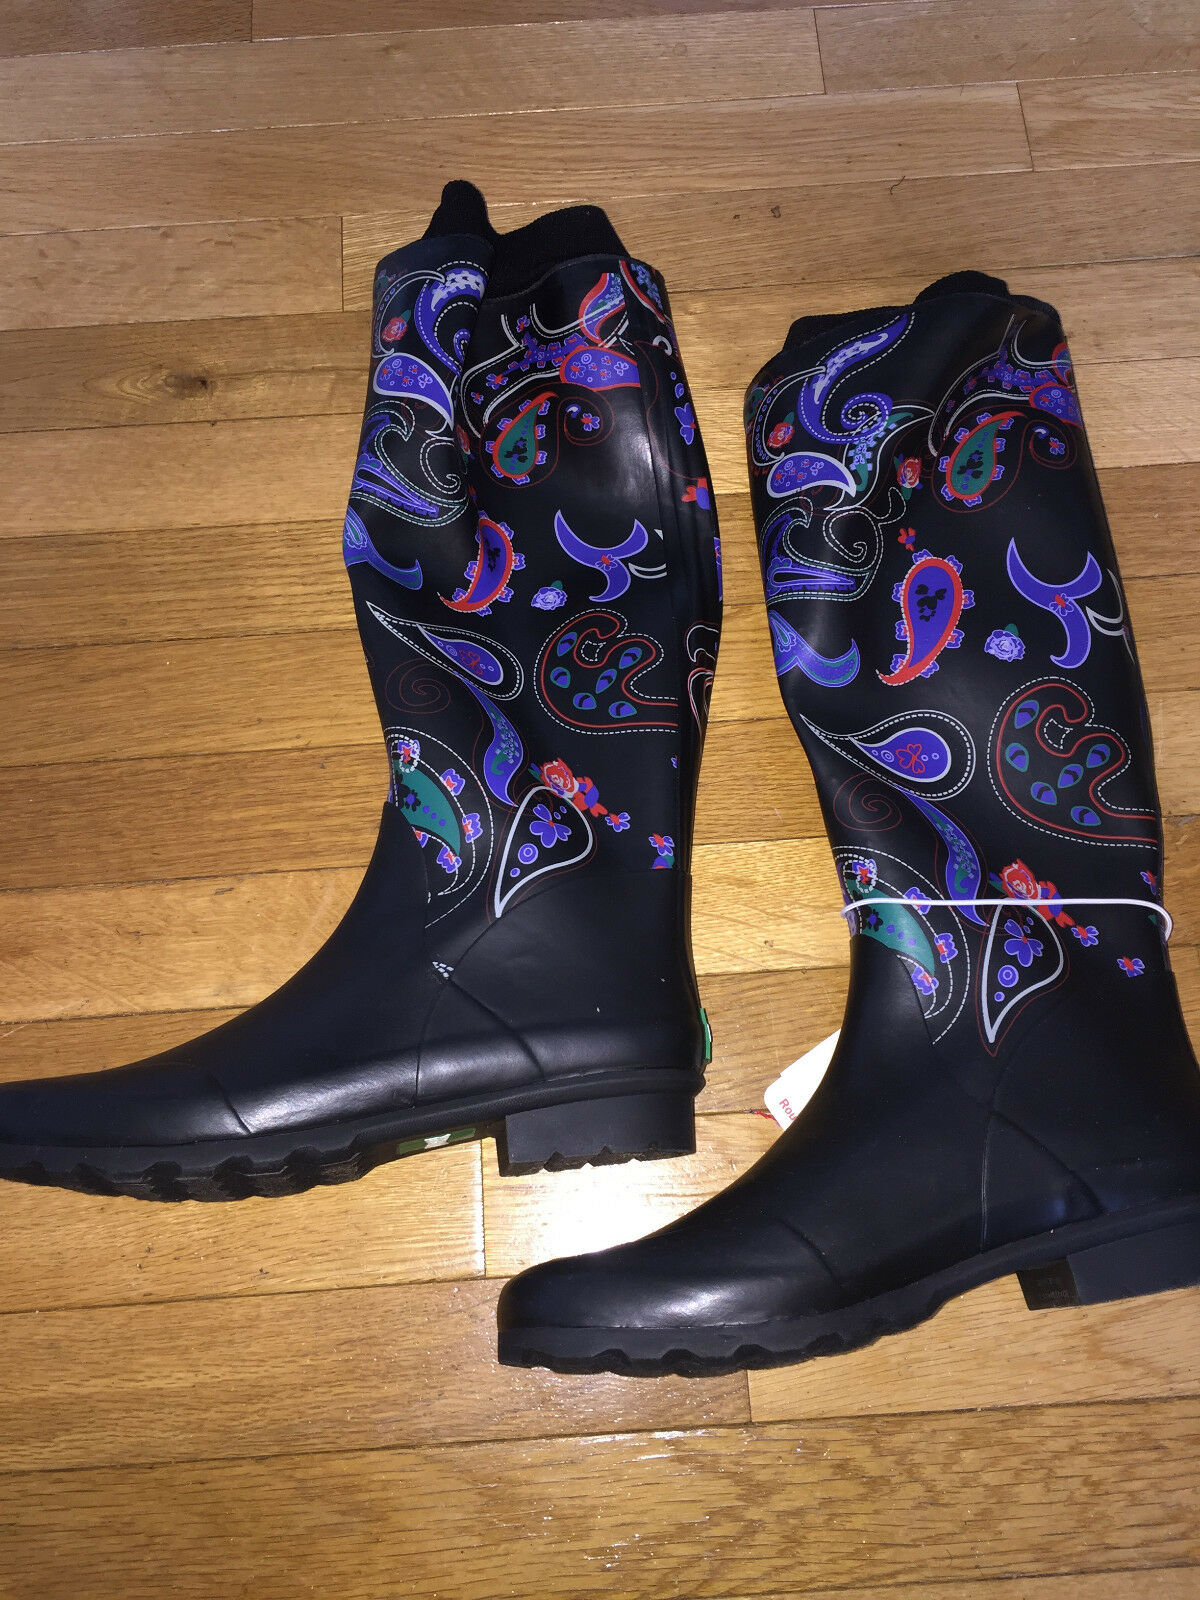 COUGAR Stiefel JUBE schwarz PAISELY TALL RUBBER RAINStiefel SZ 10 NEW